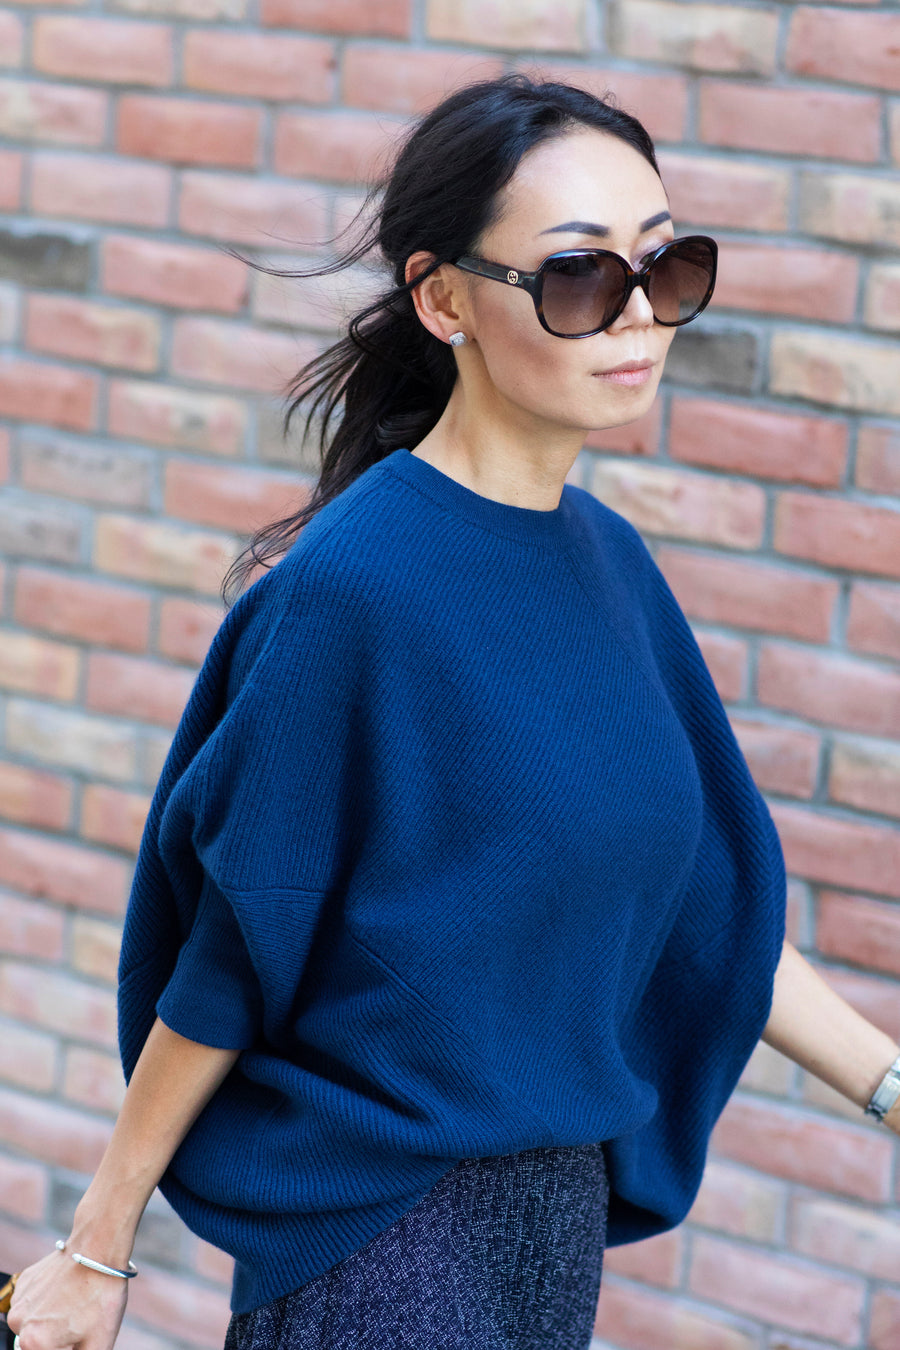 pine cashmere women's cara crewneck 100% pure cashmere poncho sweater in blue